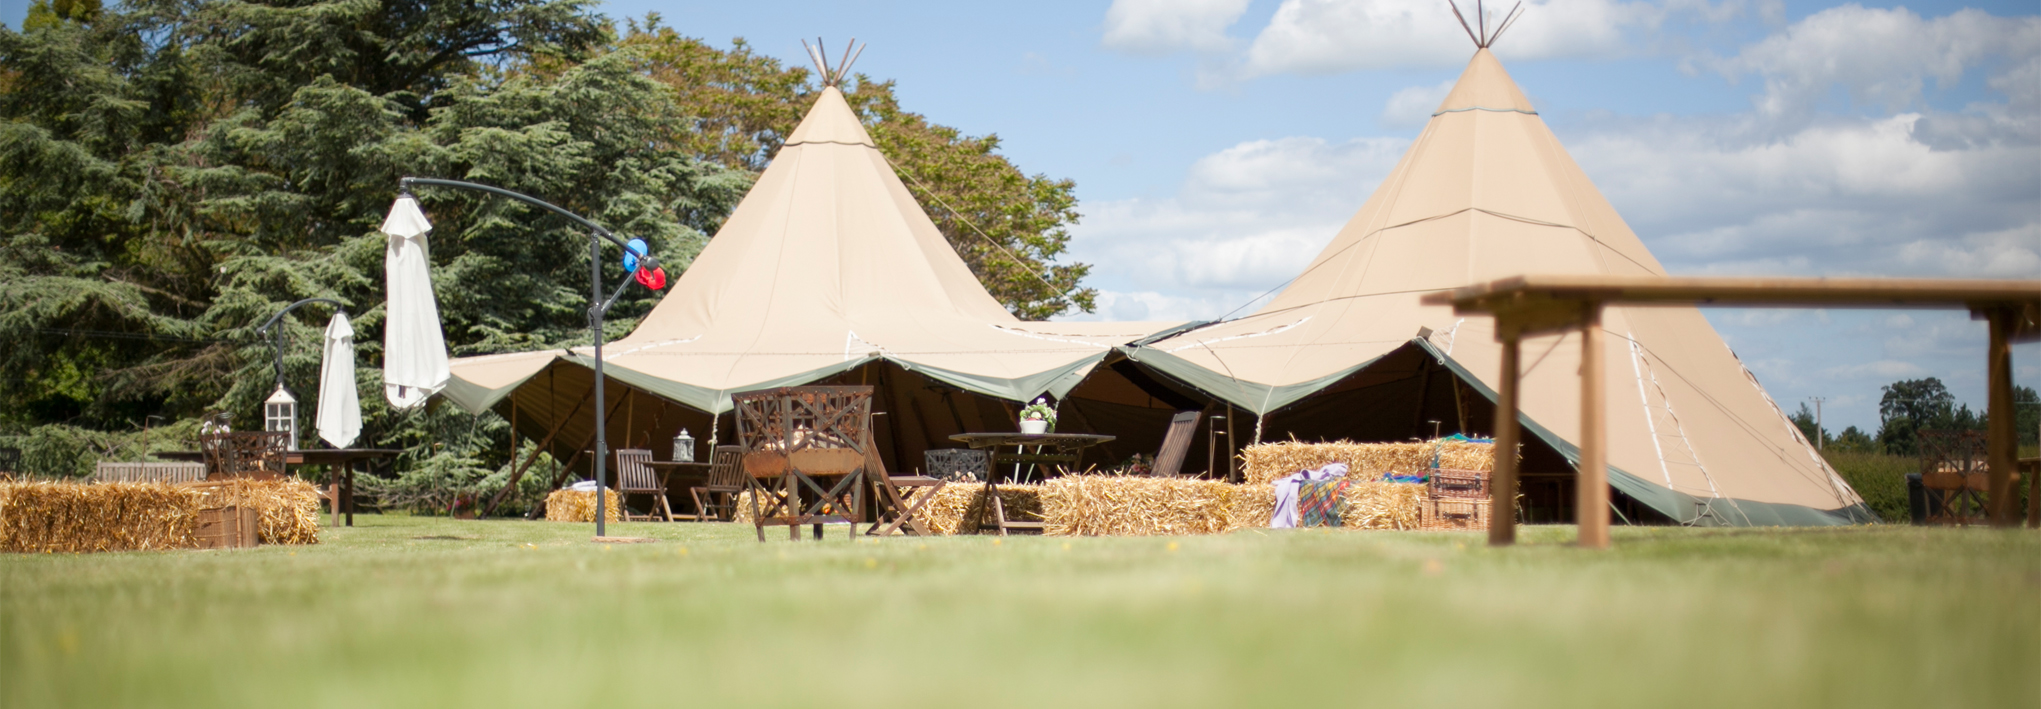 parties-and-events-teepees-FS